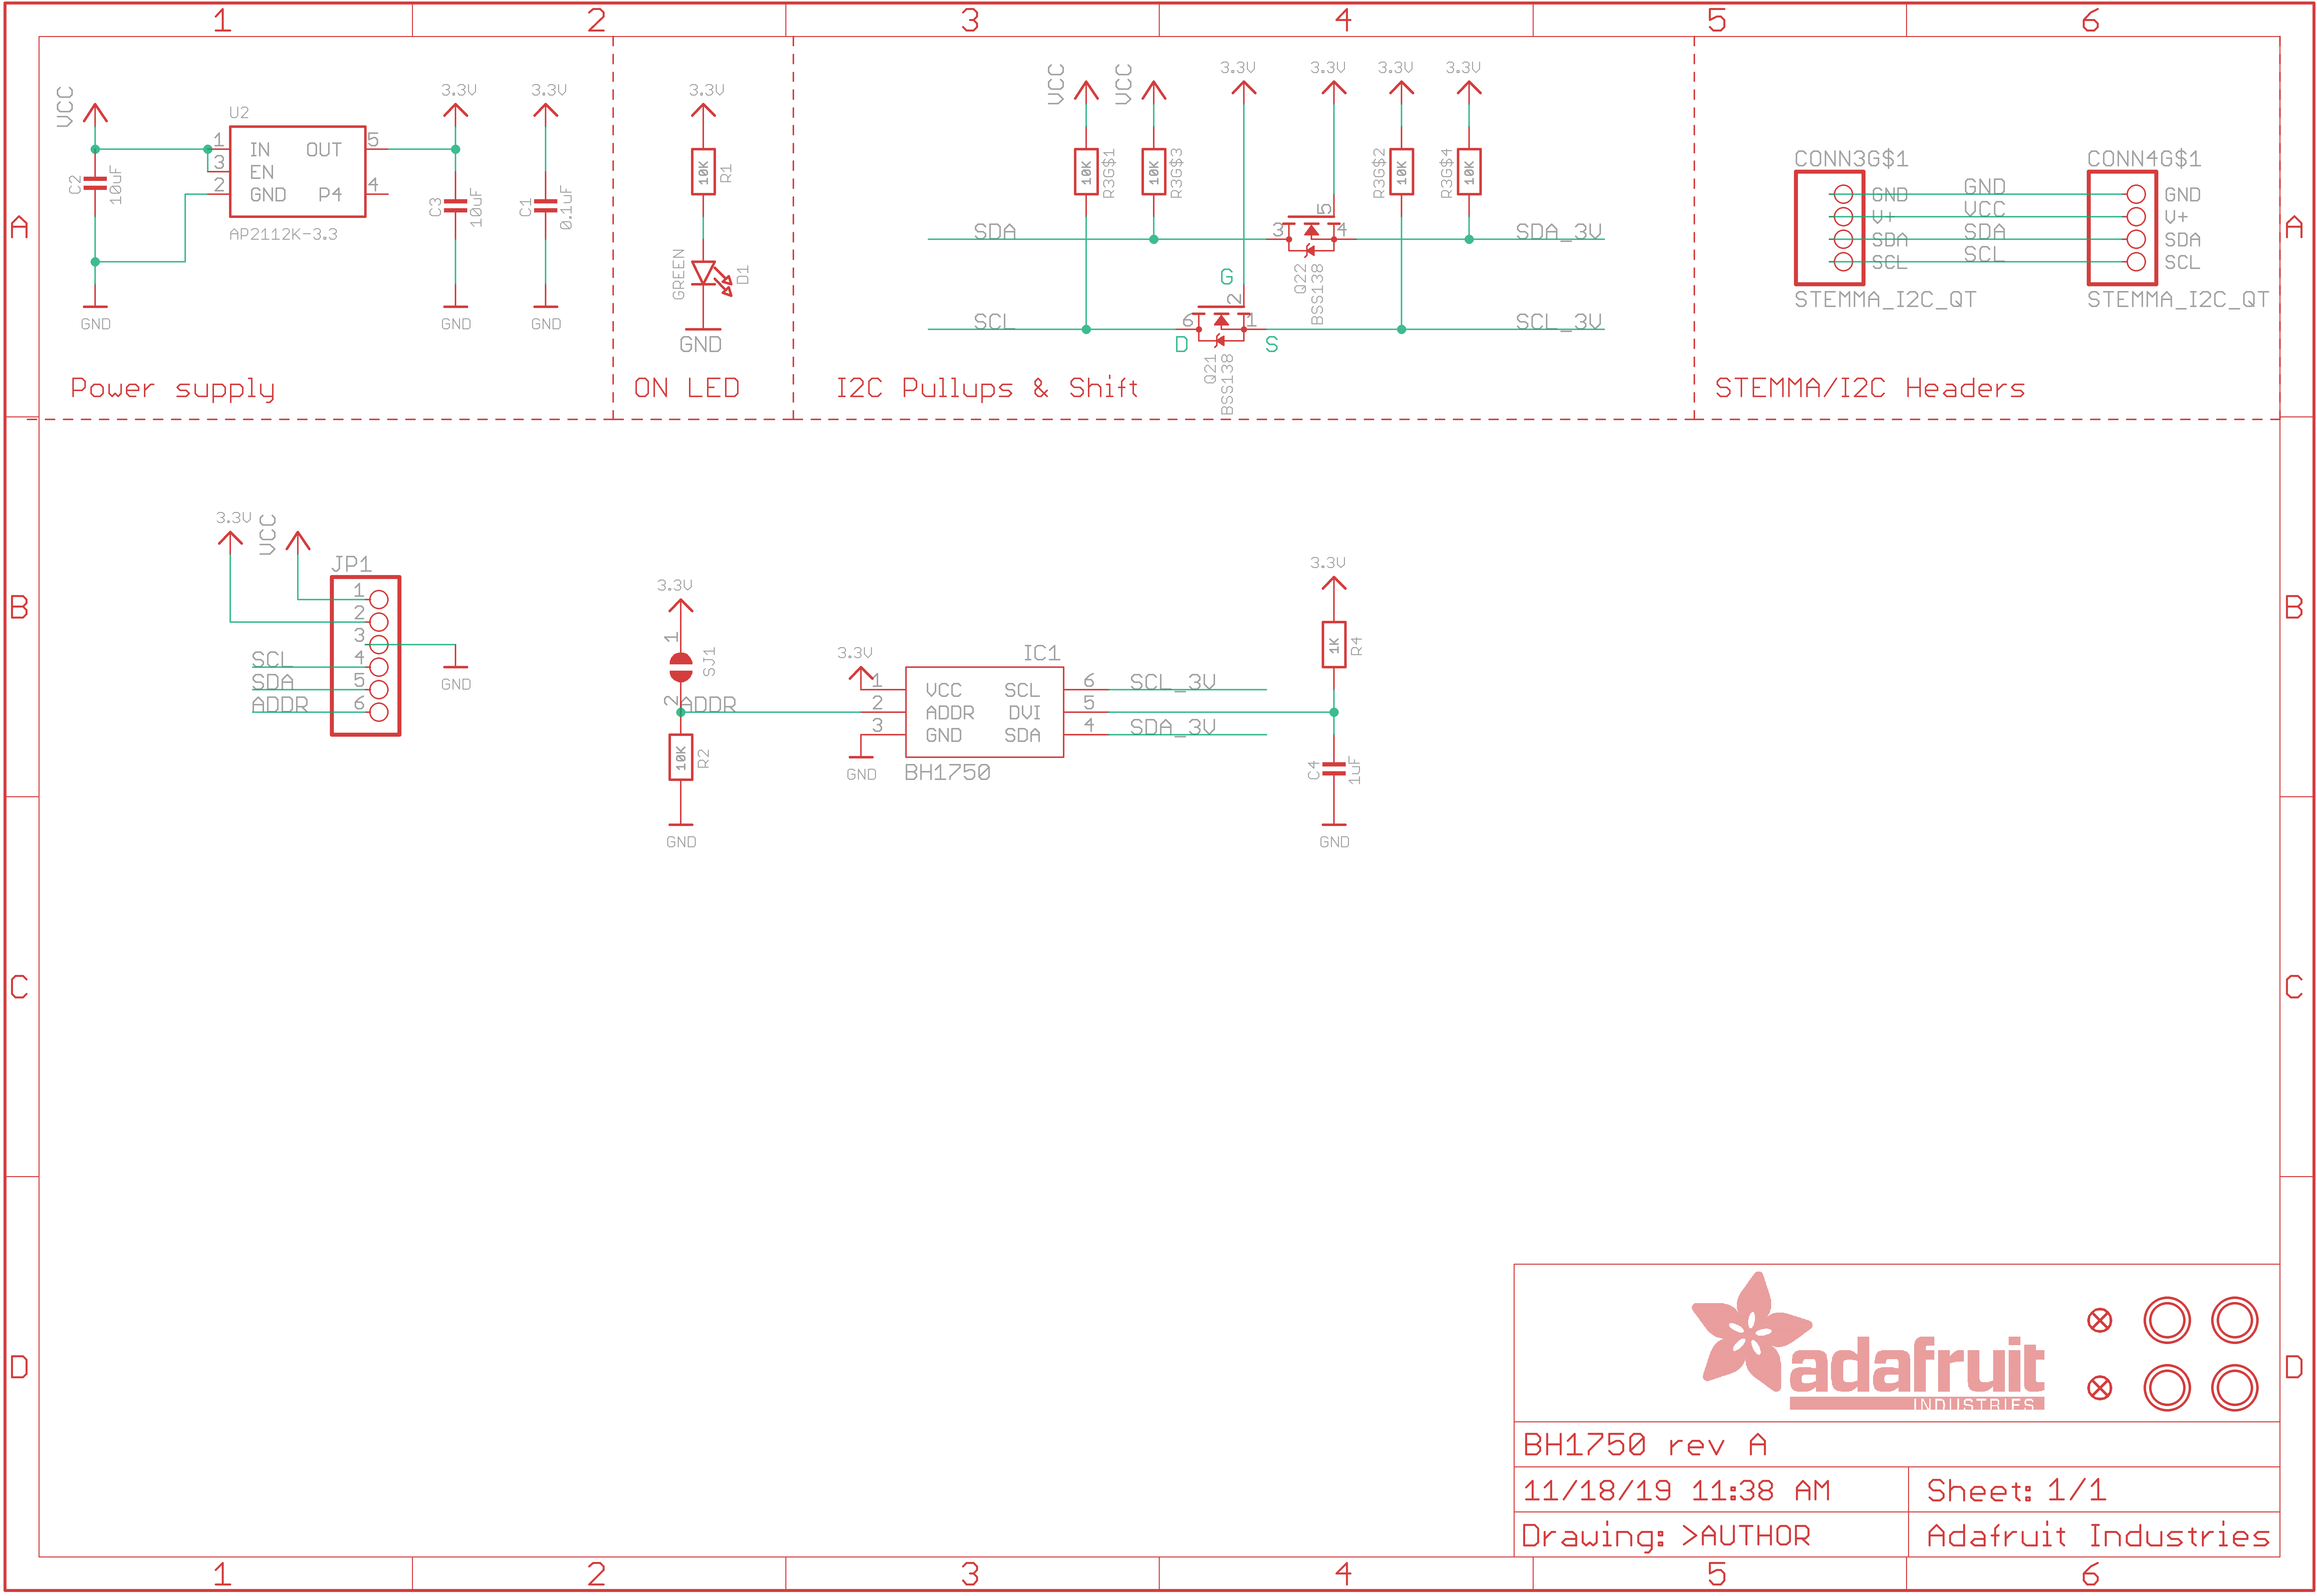 adafruit_products_x_downloads_e_schematic.png